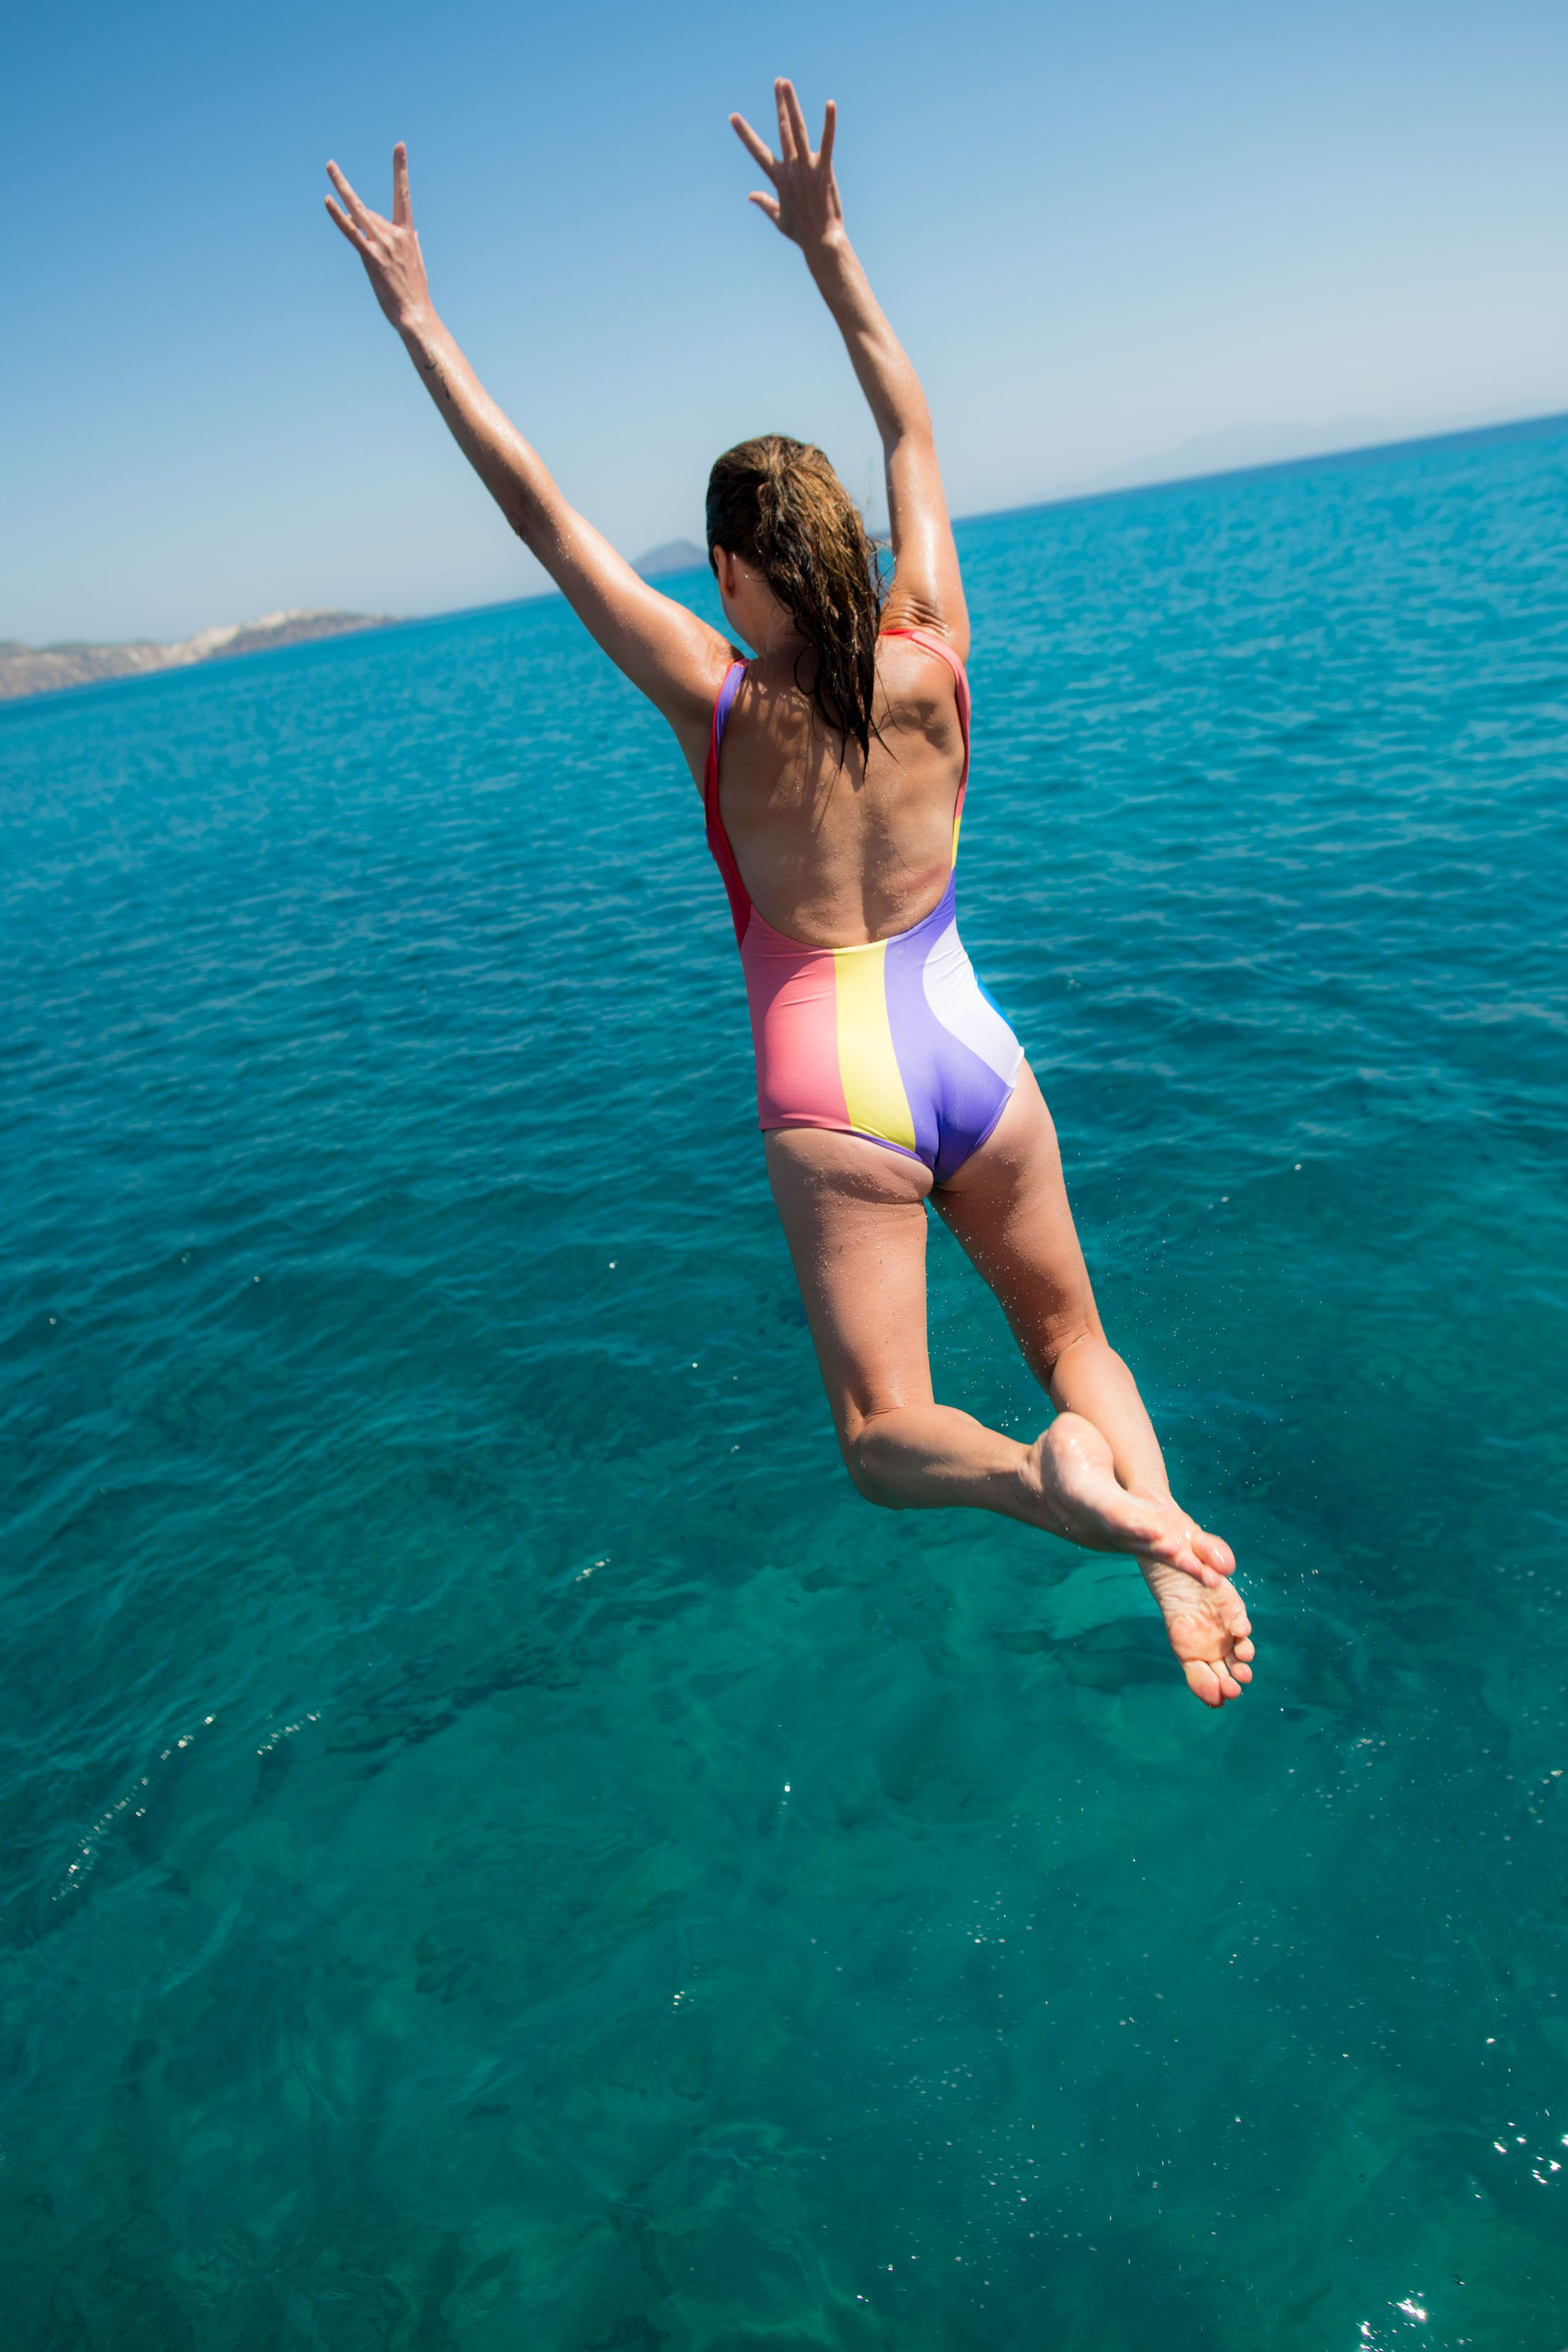 349fcf9ccec SWIM TRY-ON SESH (HIGH-RISE BIKINIS, CUTE ONE-PIECES…AND SO MUCH SKIN) |  It's. Almost. Swim. Suit. Season...Oy, Mamas! We're trying ALL the bathing  suits ...